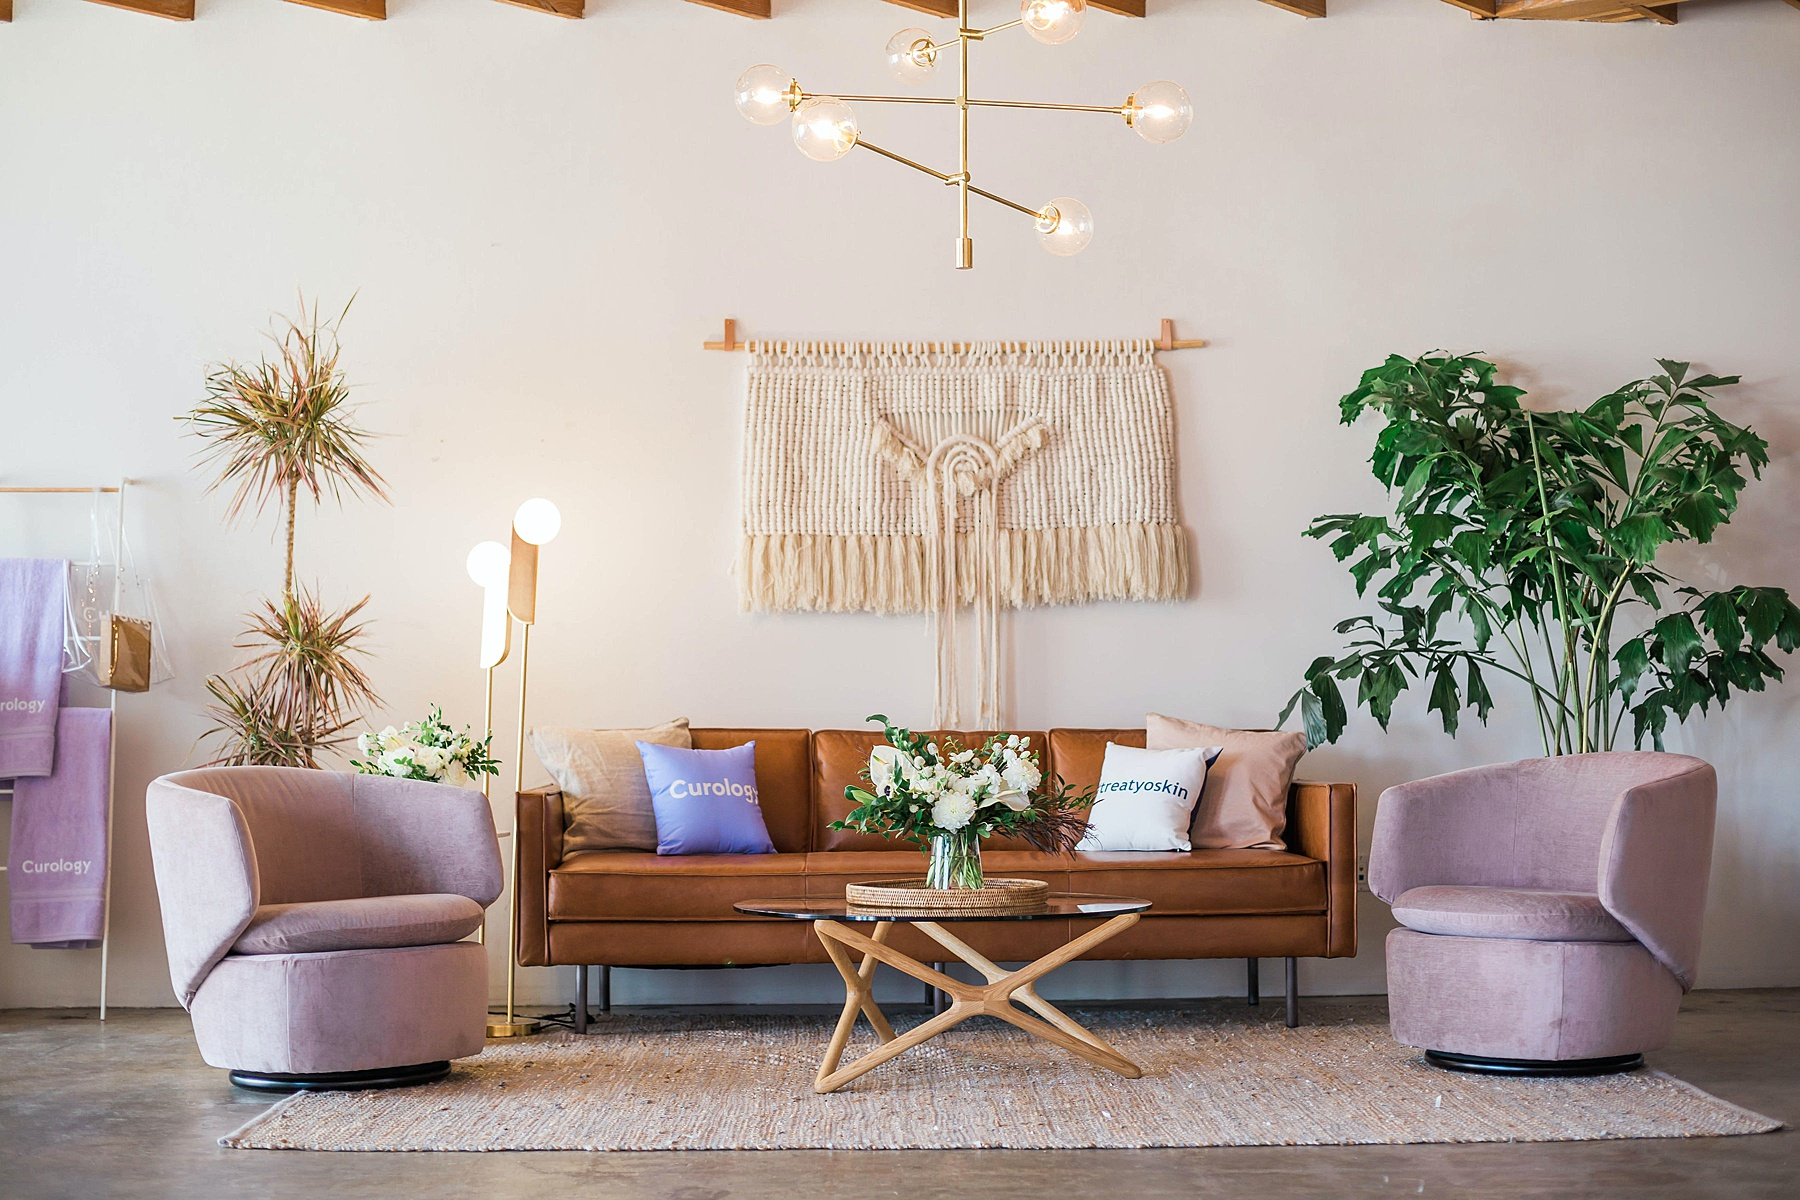 Living room with old style decor-paying homage to previous design trends with a modern twist incorporating current design trends